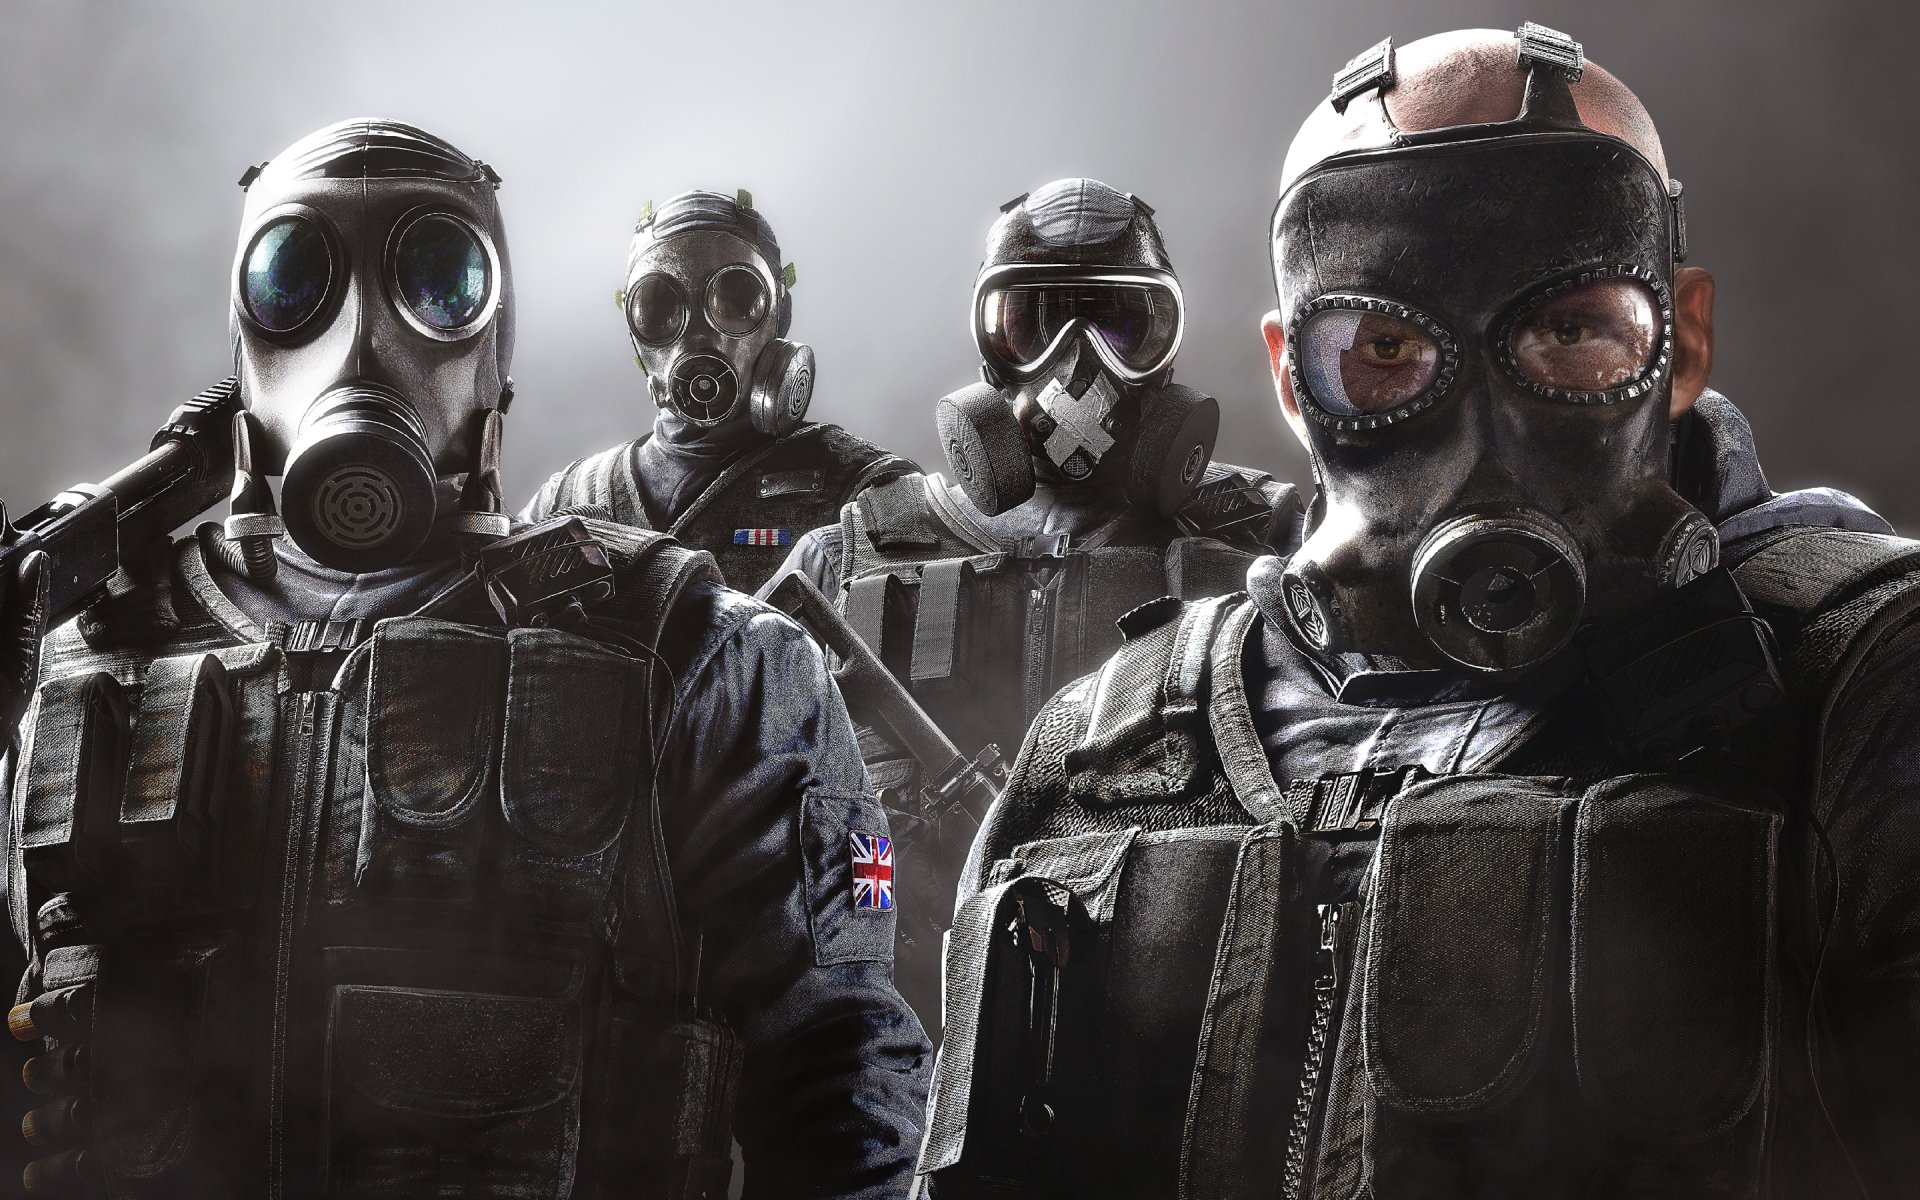 Video Game - Tom Clancy's Rainbow Six: Siege  Sledge (Tom Clancy's Rainbow Six: Siege) Smoke (Tom Clancy's Rainbow Six: Siege) Mute (Tom Clancy's Rainbow Six: Siege) Thatcher (Tom Clancy's Rainbow Six: Siege) Wallpaper